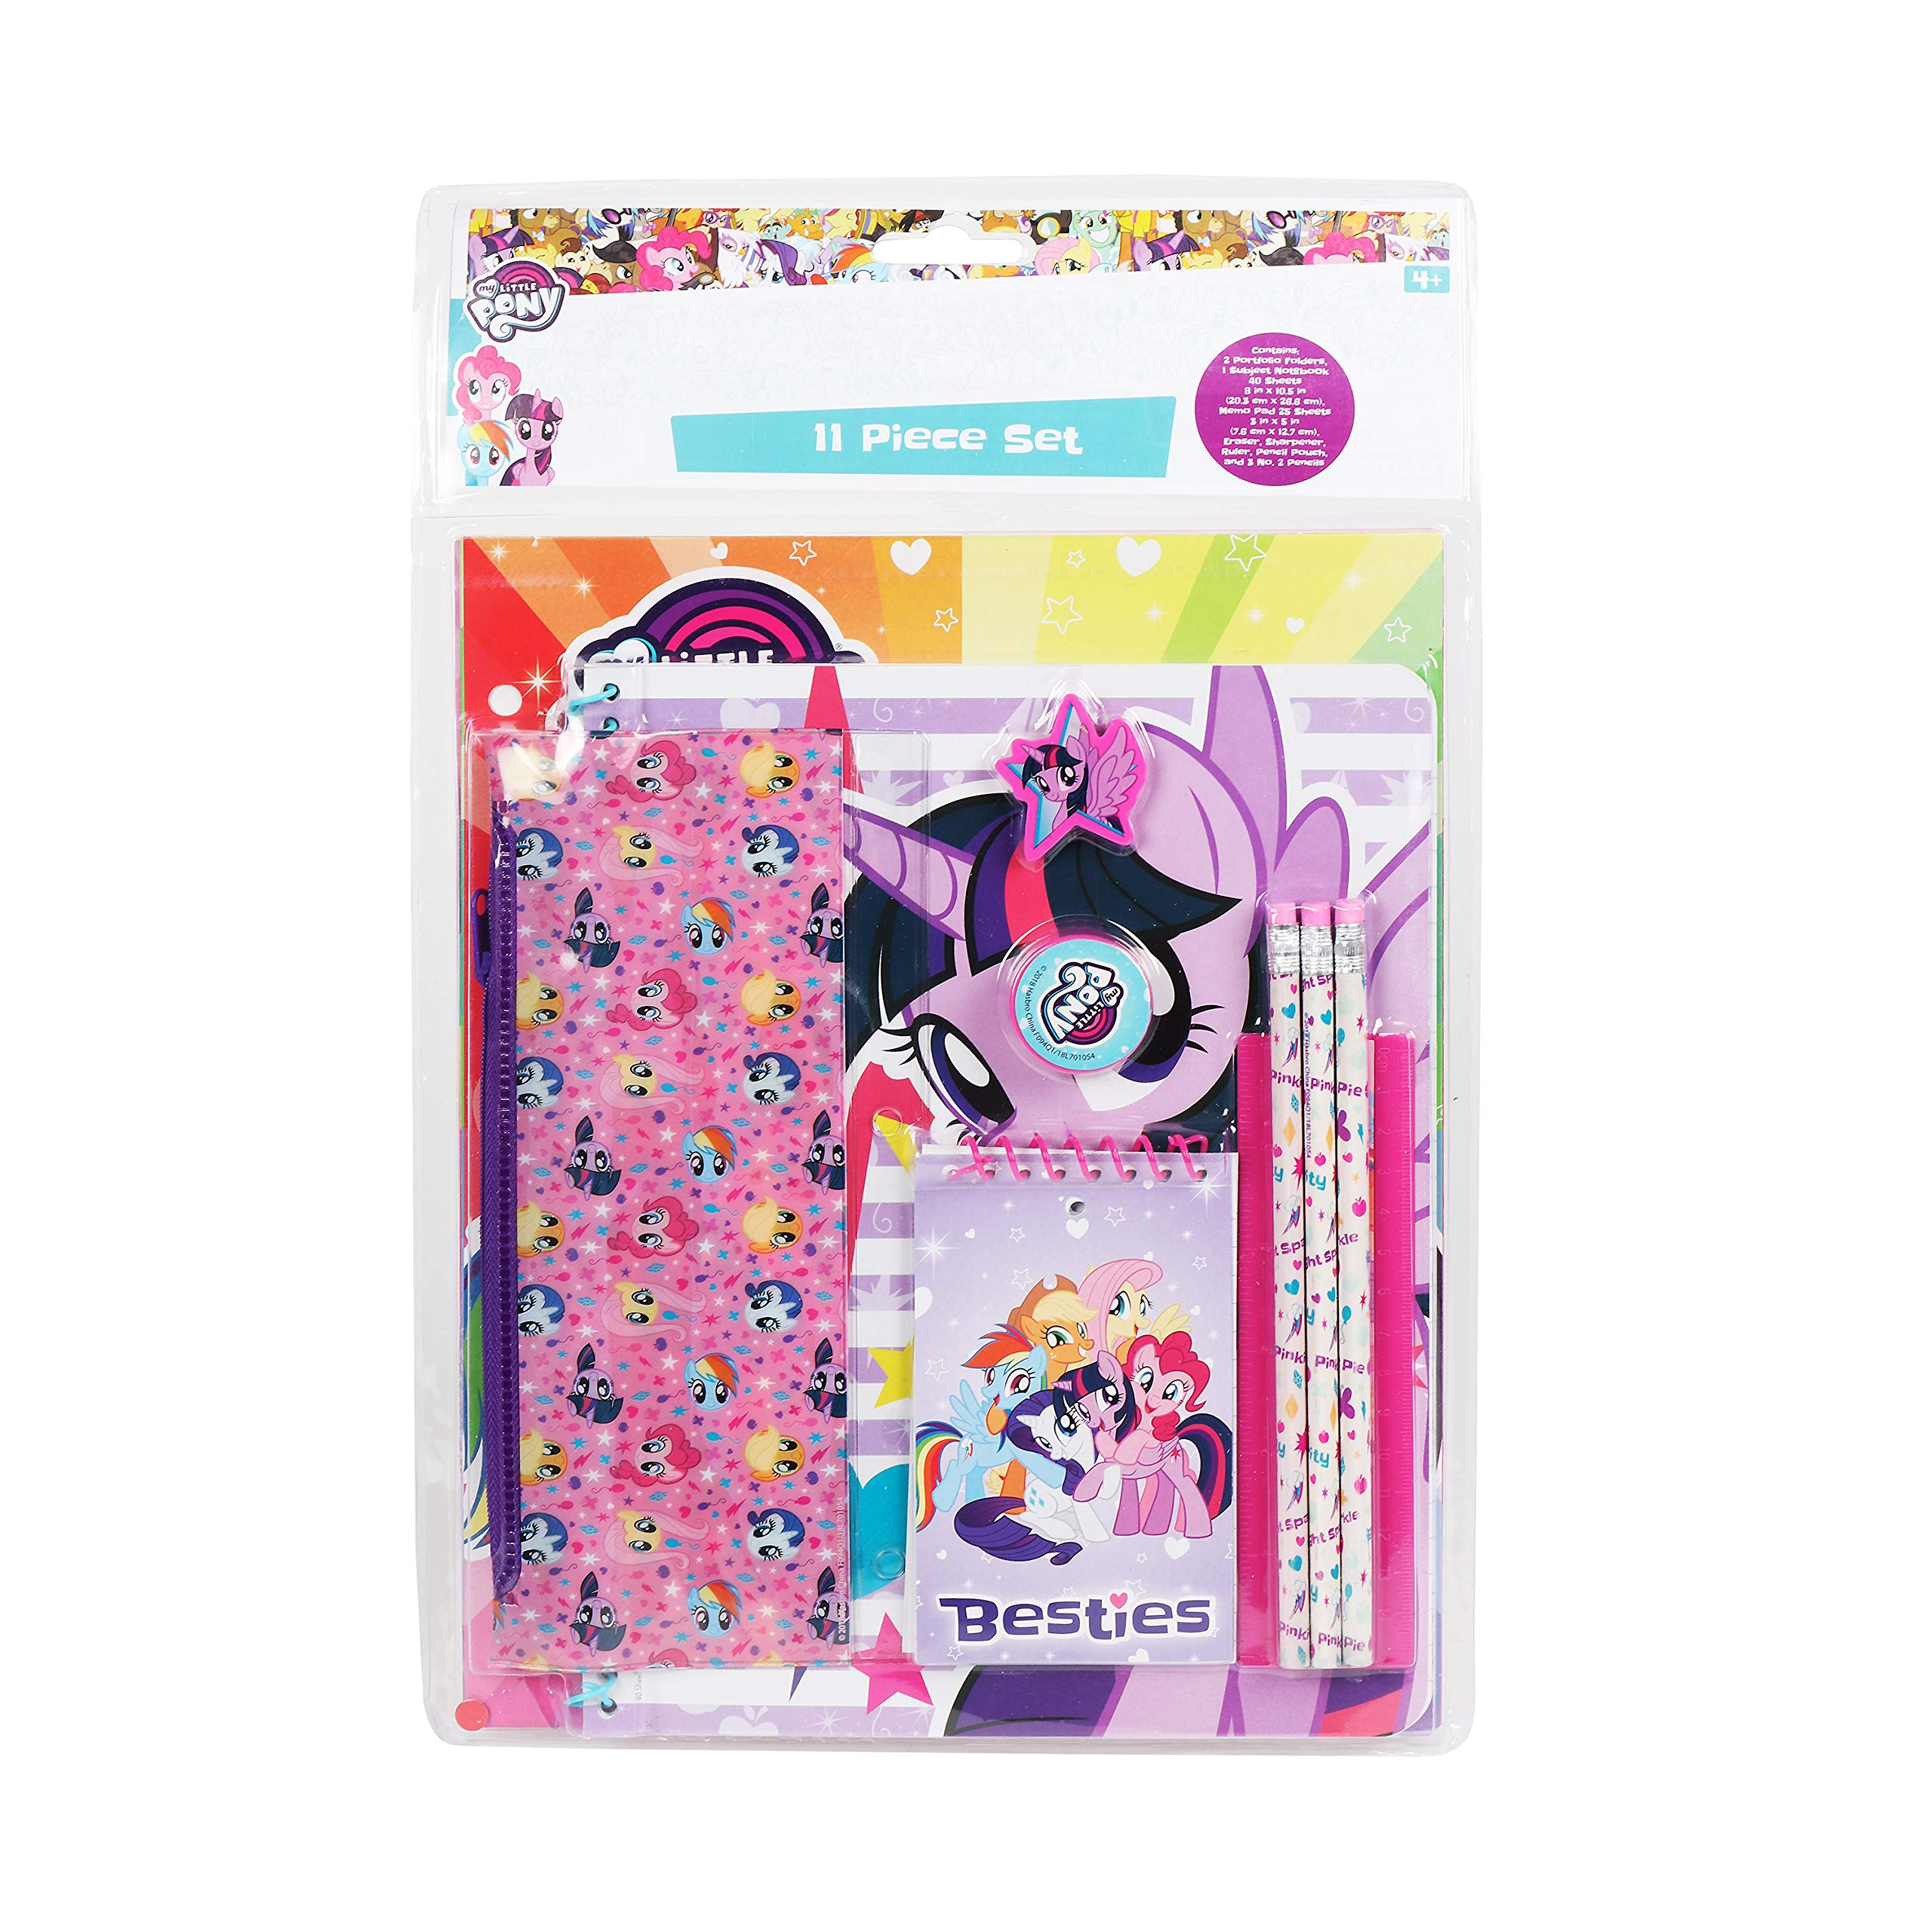 Fun89 My Little Pony 11 Piece Set Back to School for Girls